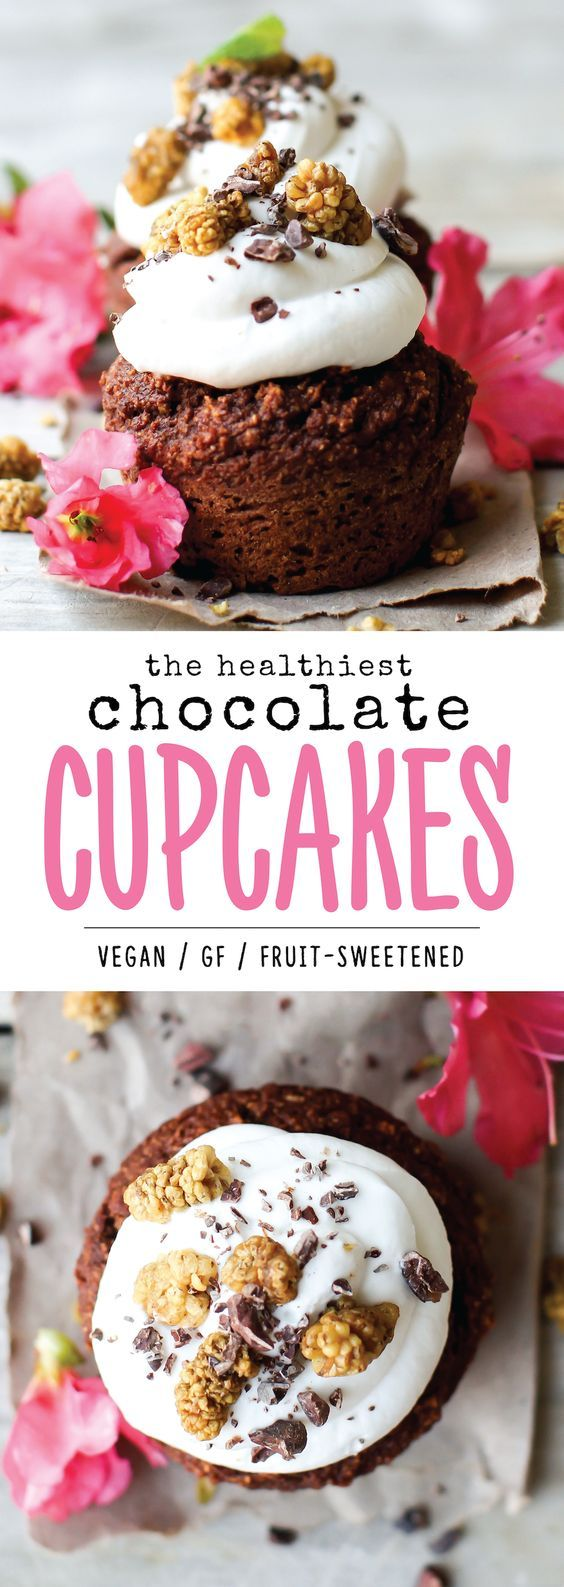 These ridiculously healthy Chocolate Cupcakes are vegan, gluten-free, oil-free, sugar-free, nut-free, and so decadent. The perfect guilt-free chocolate treat, and easy to make too!